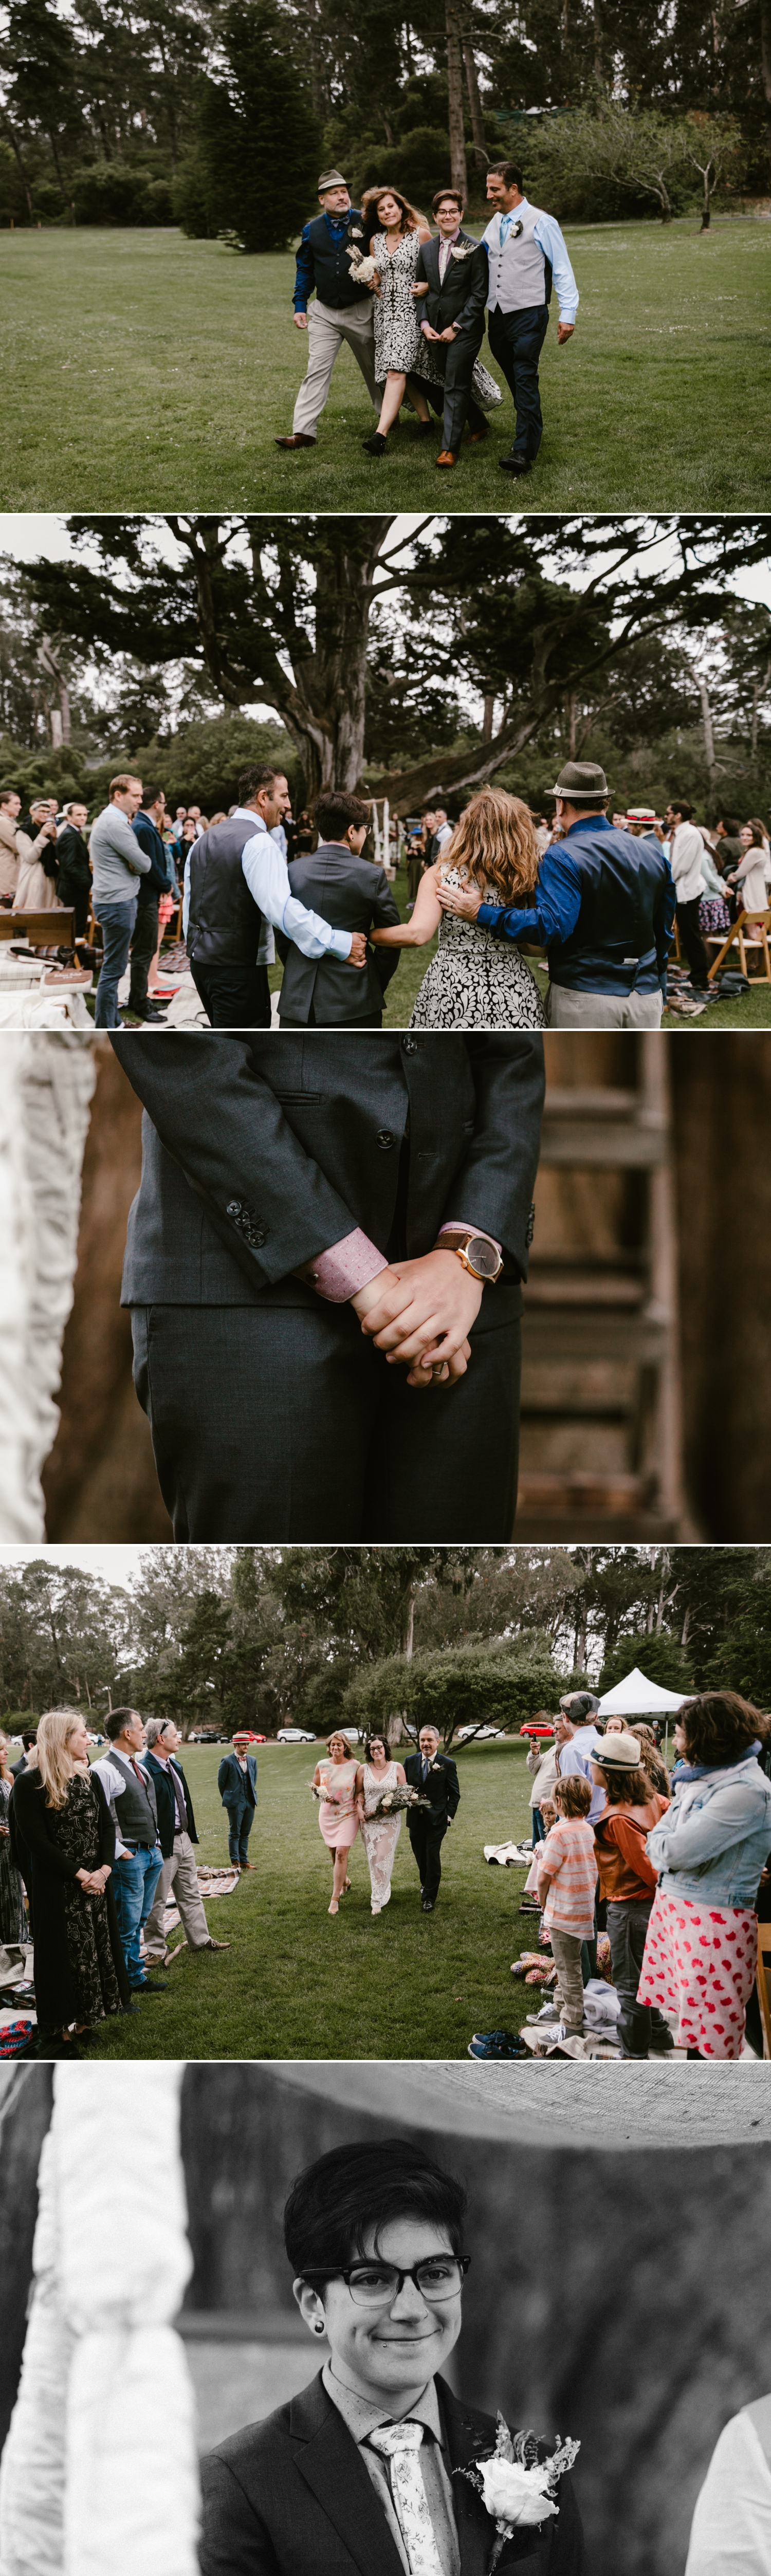 Hellman Hollow lesbian wedding San Francisco by Paige Nelson